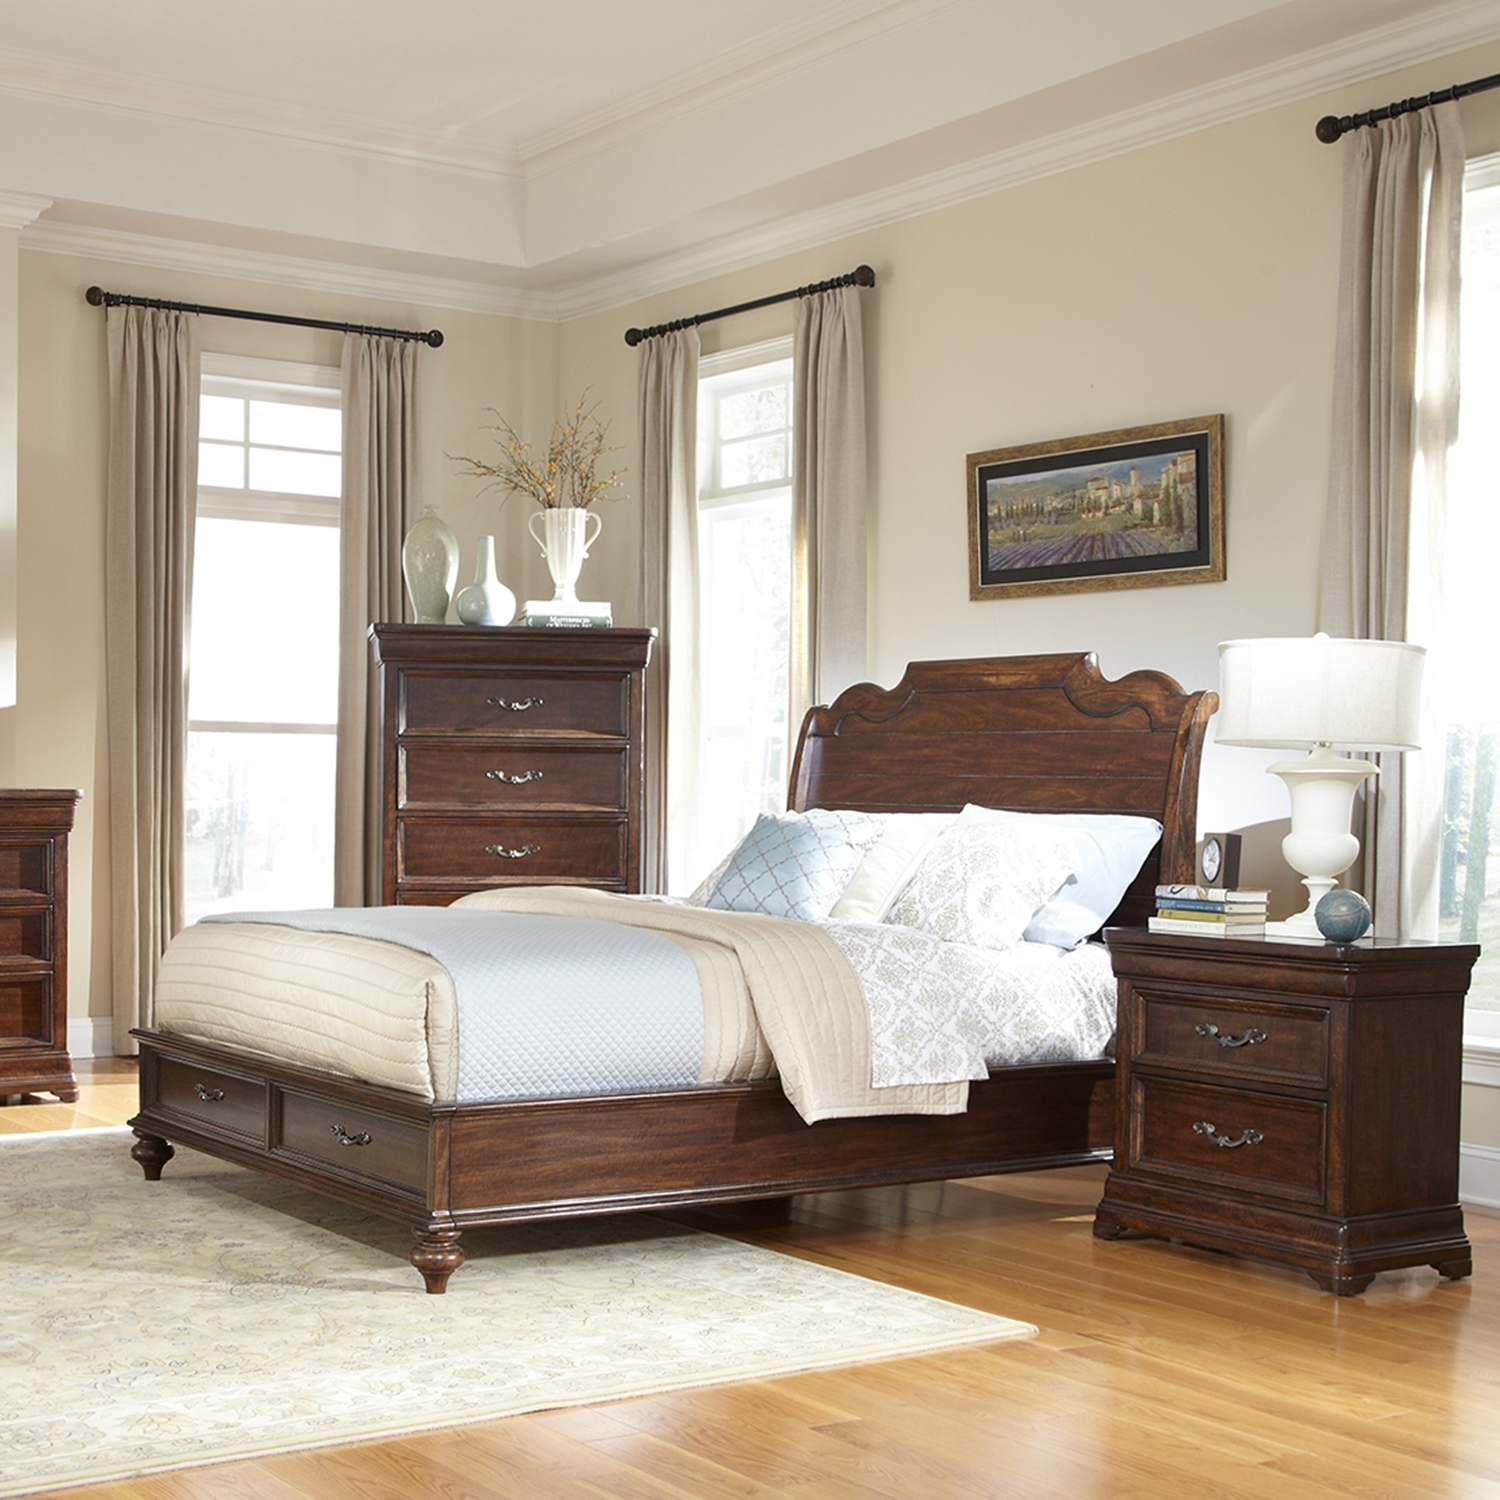 Signature Queen Sleigh Bed with Storage Set in Rich Dark Brown - AW-8000-QSLES-SET